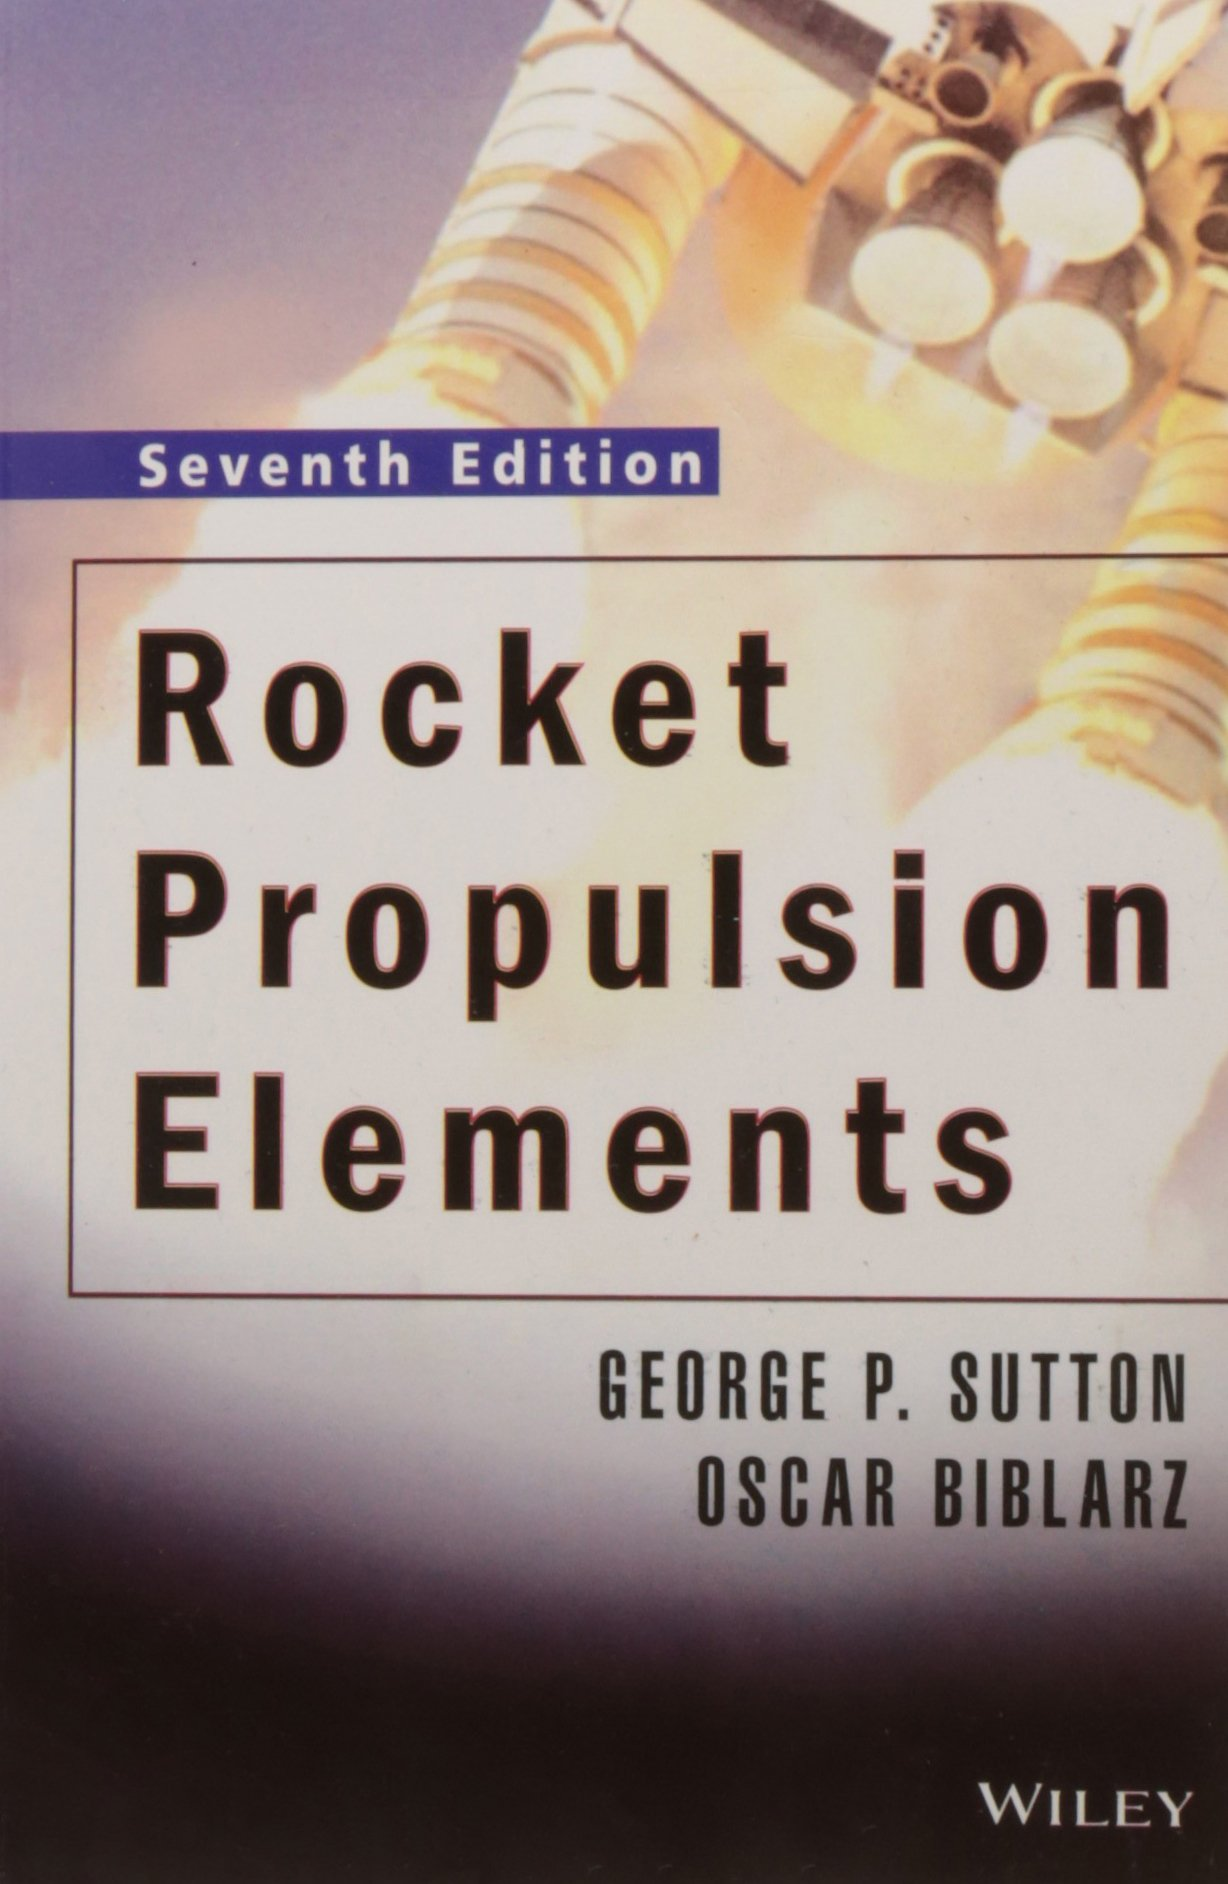 Rocket Propulsion Elements George P Sutton Et Al 9788126525775 Amazon Com Books